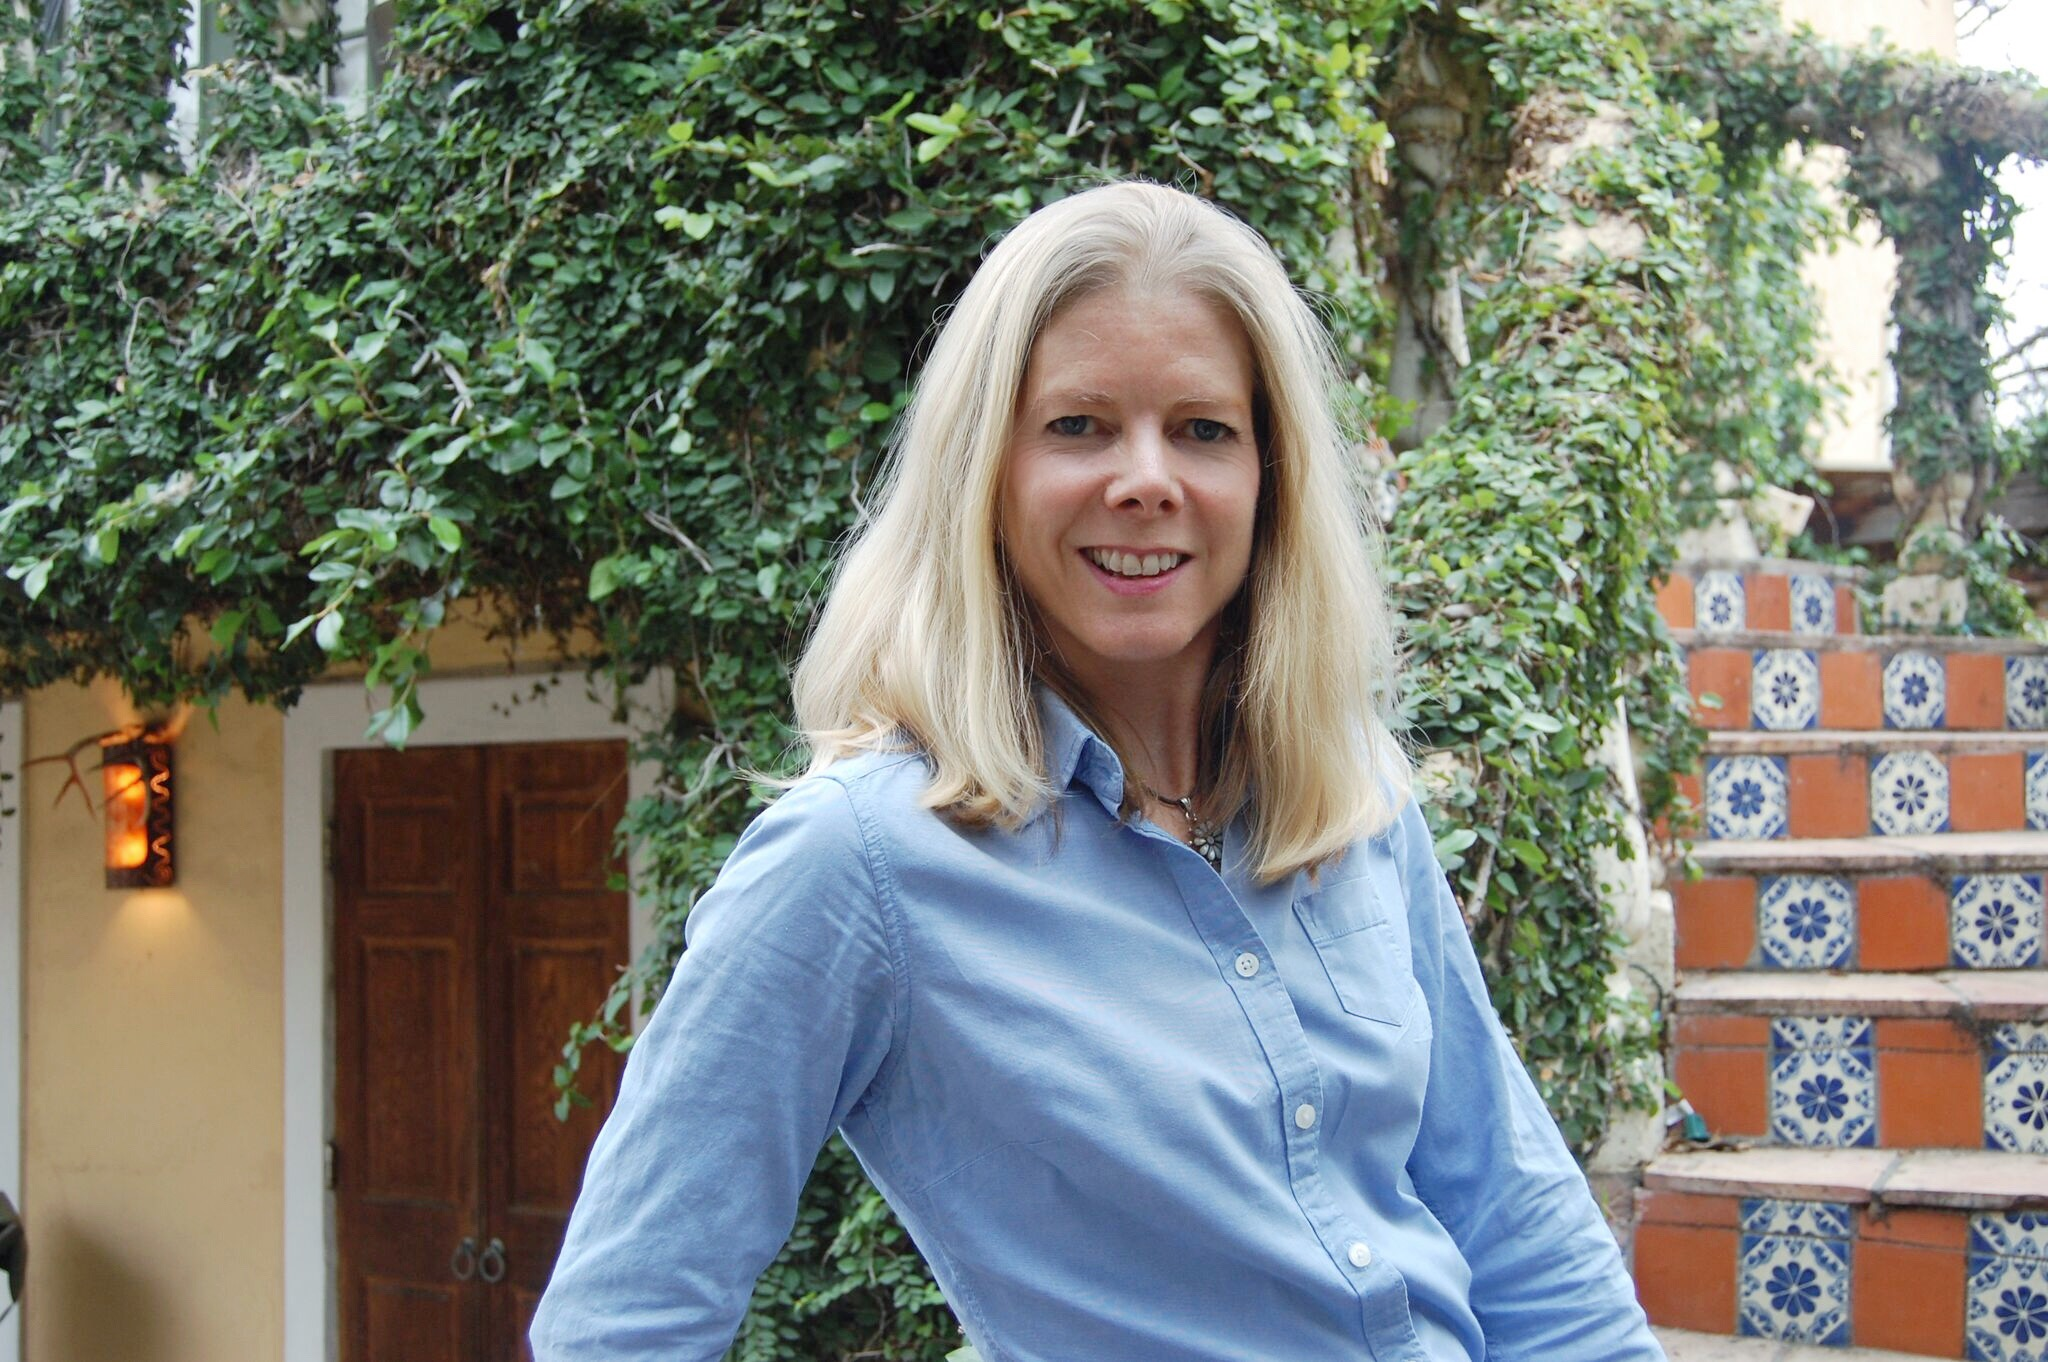 Suzanne Franks, Founder of HapPea Fries